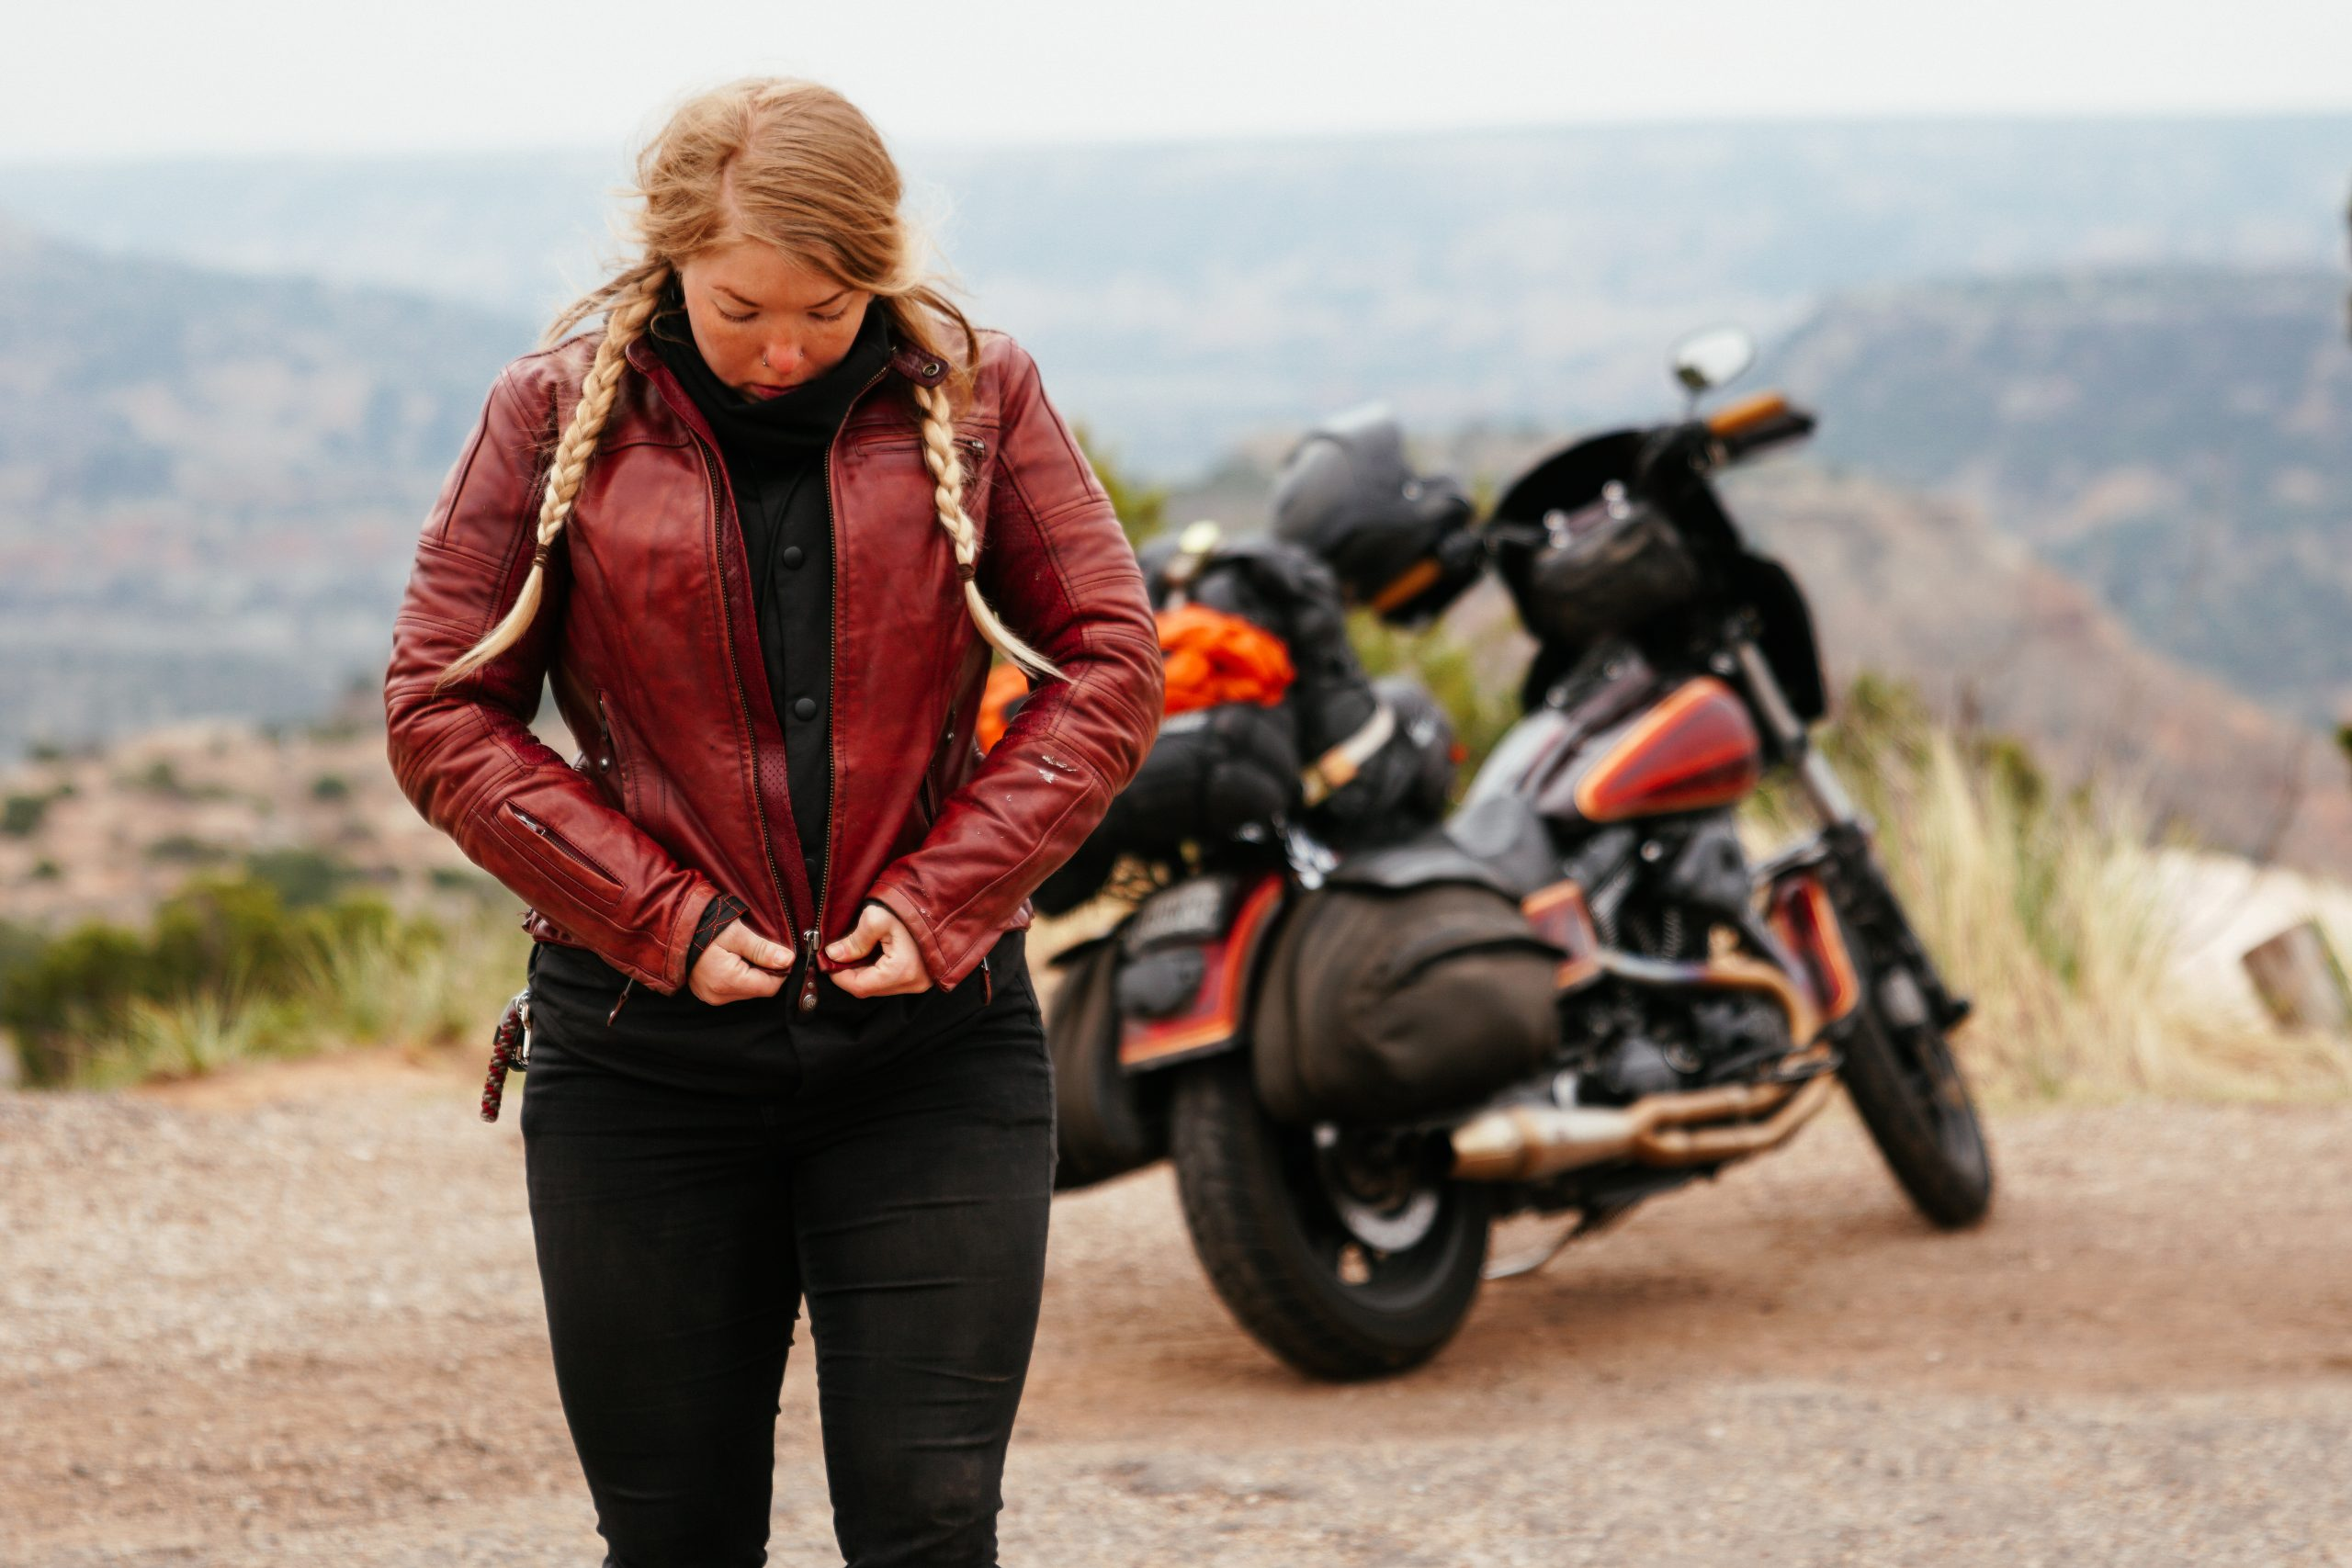 The Roland Sands Design Women's Maven Leather Jacket Review